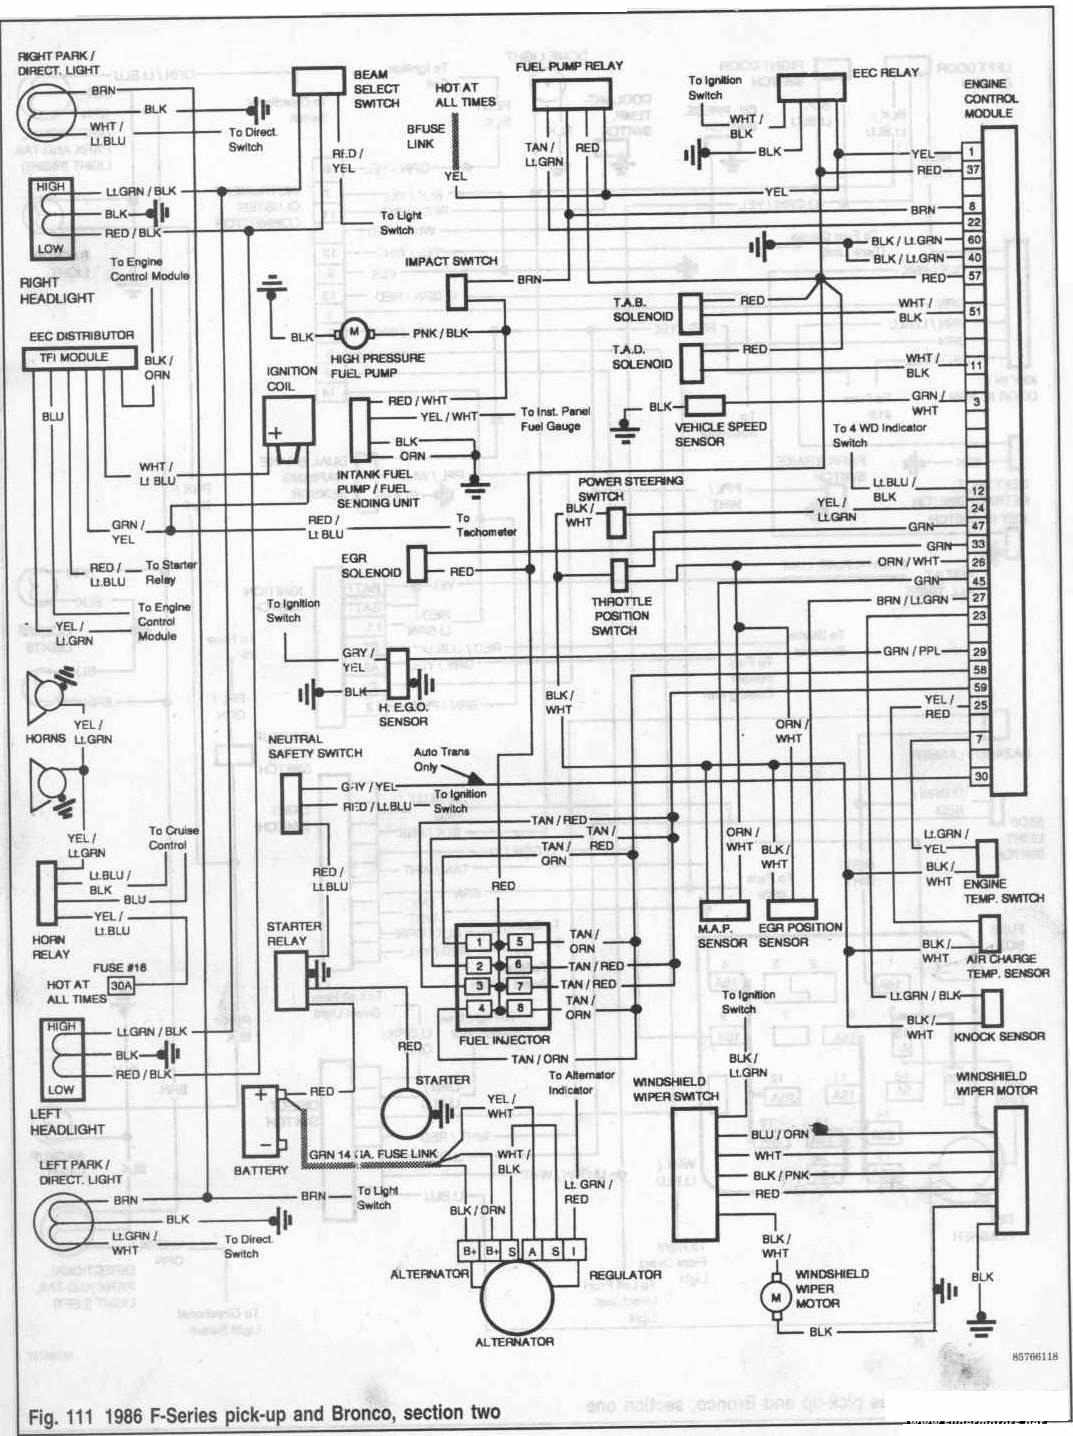 1986 Ford Bronco Wiring Diagram